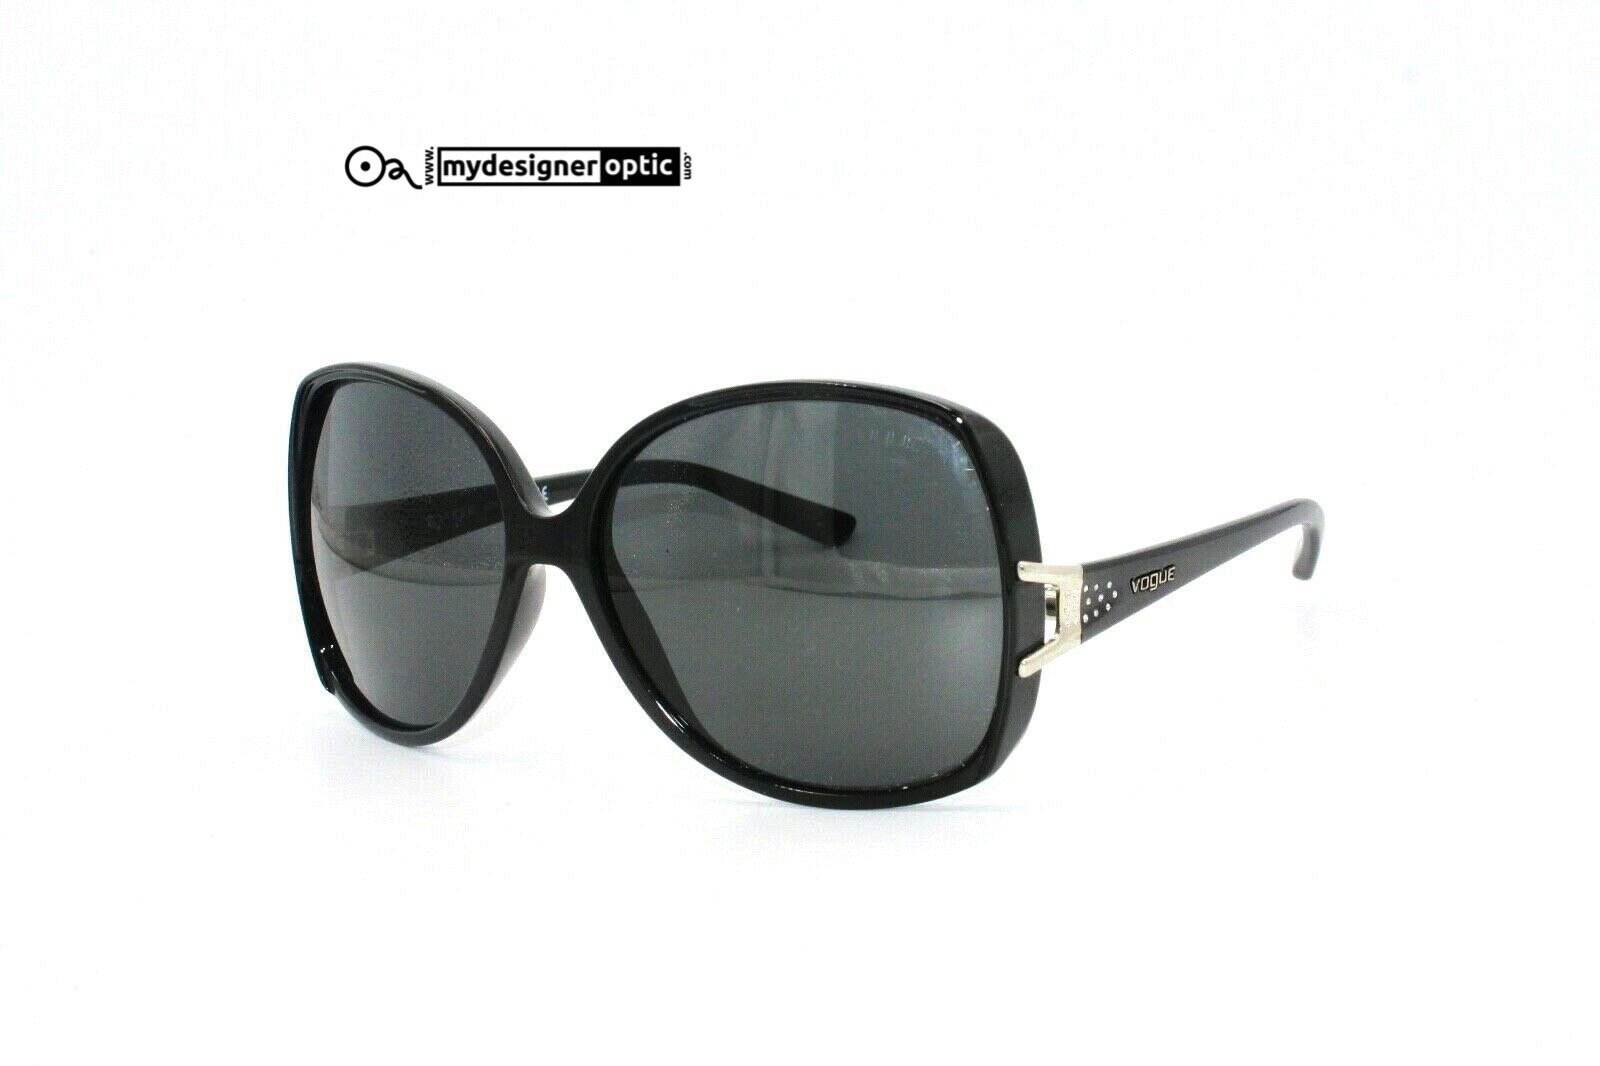 Vogue Sunglasses VO-2665-S-B W44/87 60-15 130 3N Made in Italy - Mydesigneroptic